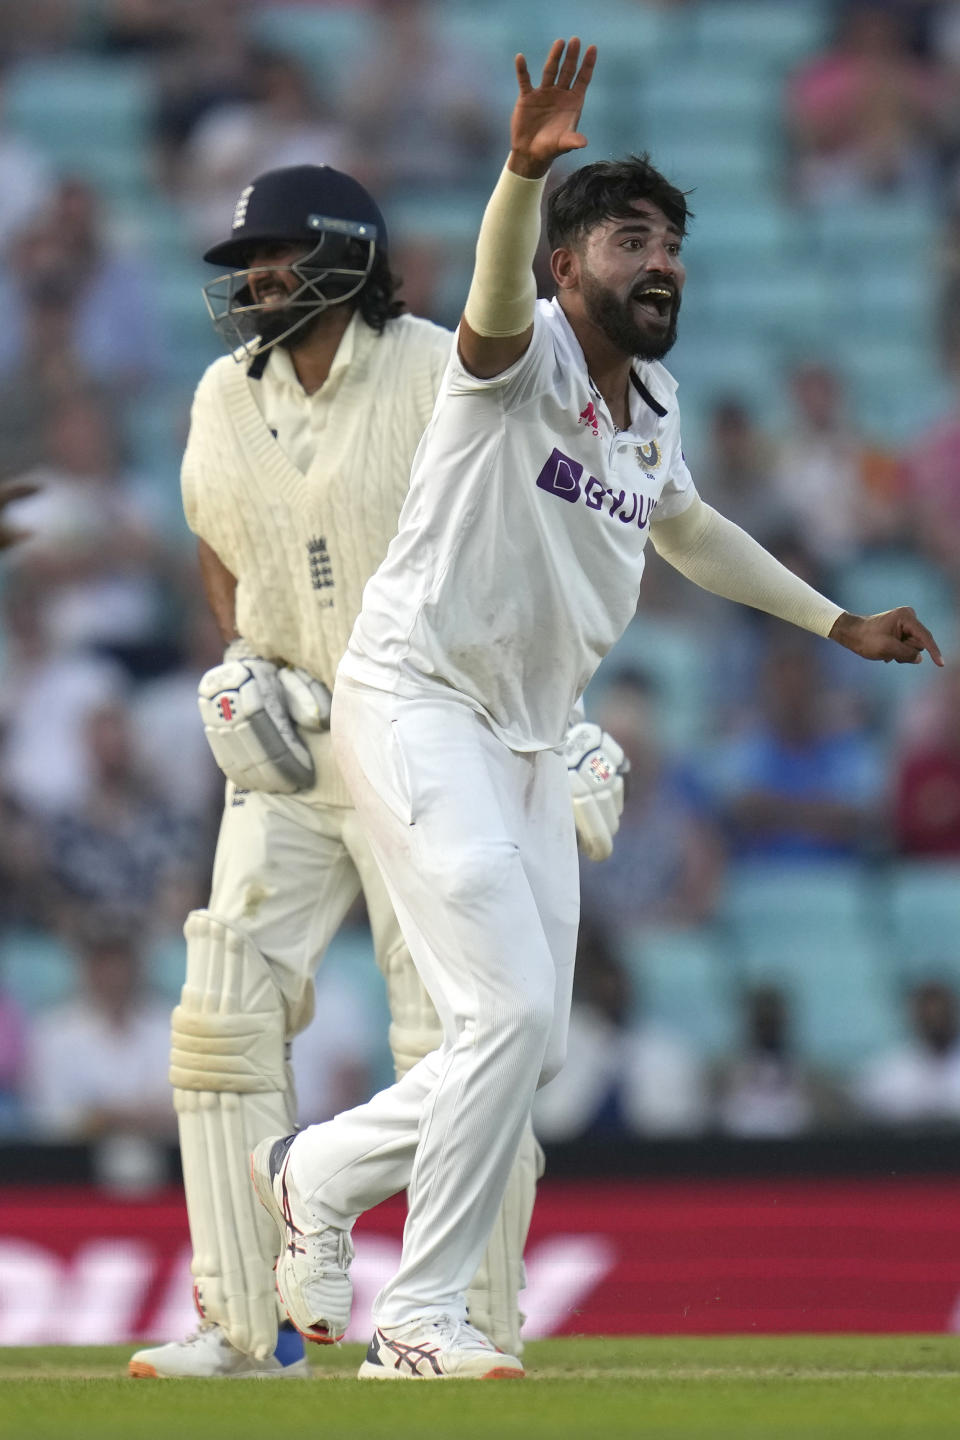 India's Mohammed Shami appeals unsuccessfully against England's Haseeb Hameed, left, on day four of the fourth Test match at The Oval cricket ground in London, Sunday, Sept. 5, 2021. (AP Photo/Kirsty Wigglesworth)